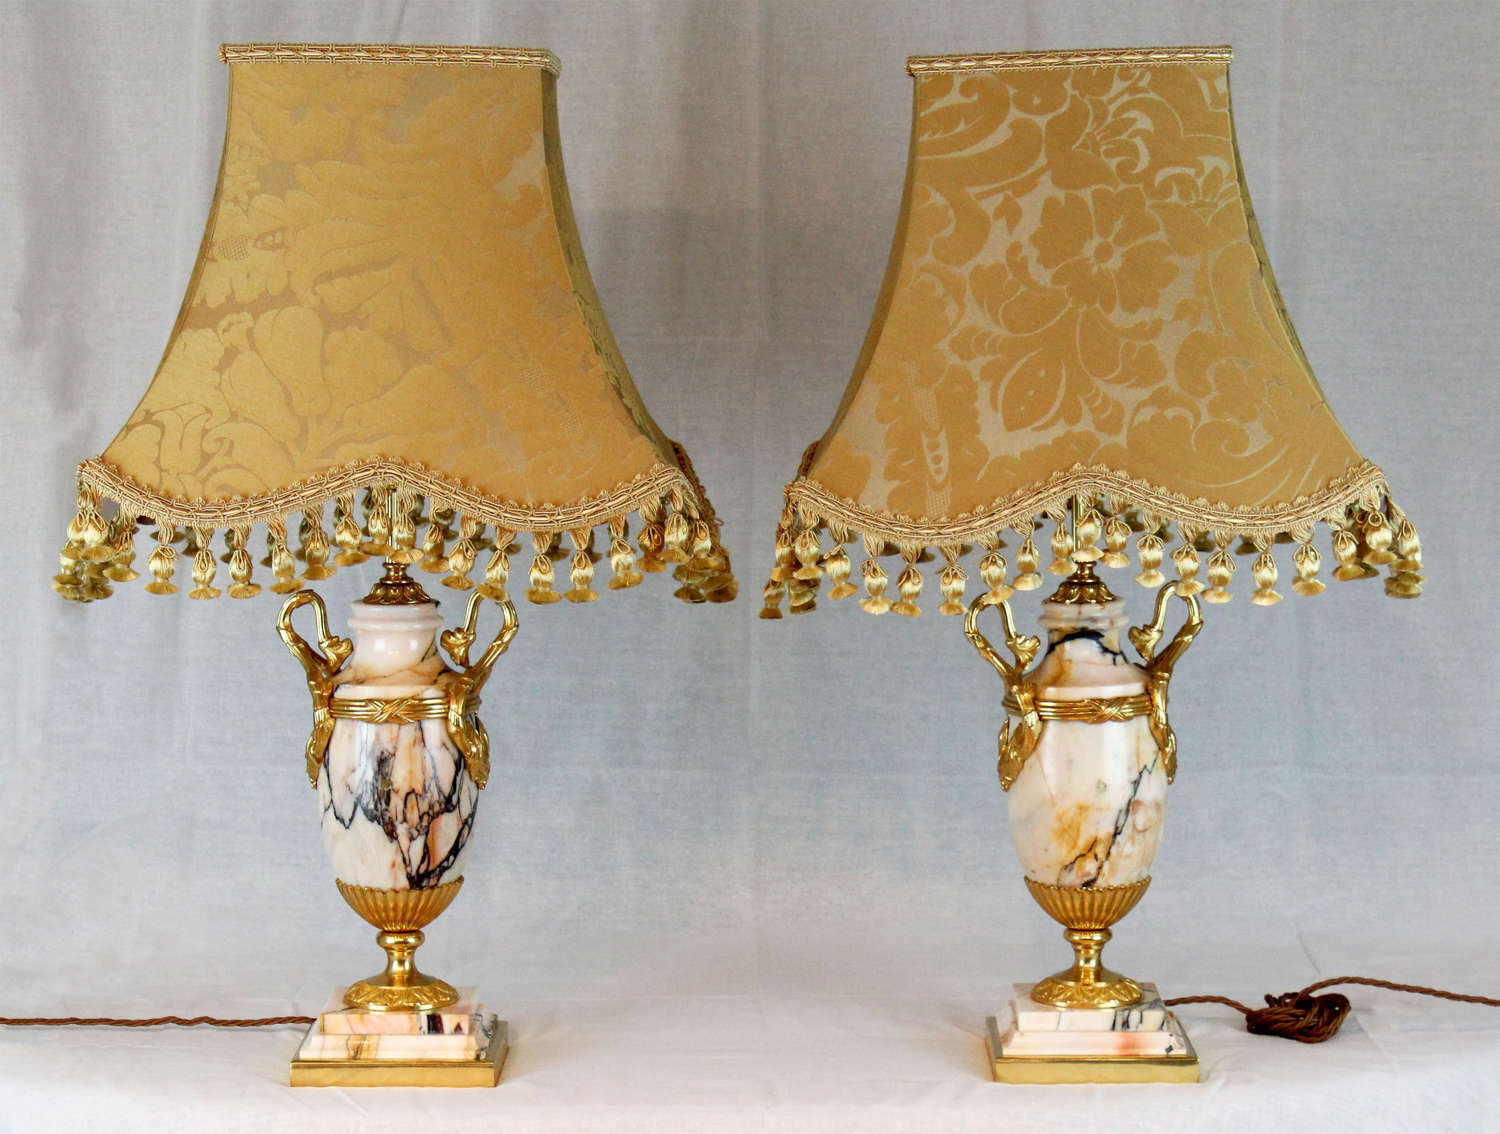 A Late 19th C. Pair of French Marble and Ormolu Table Lamps